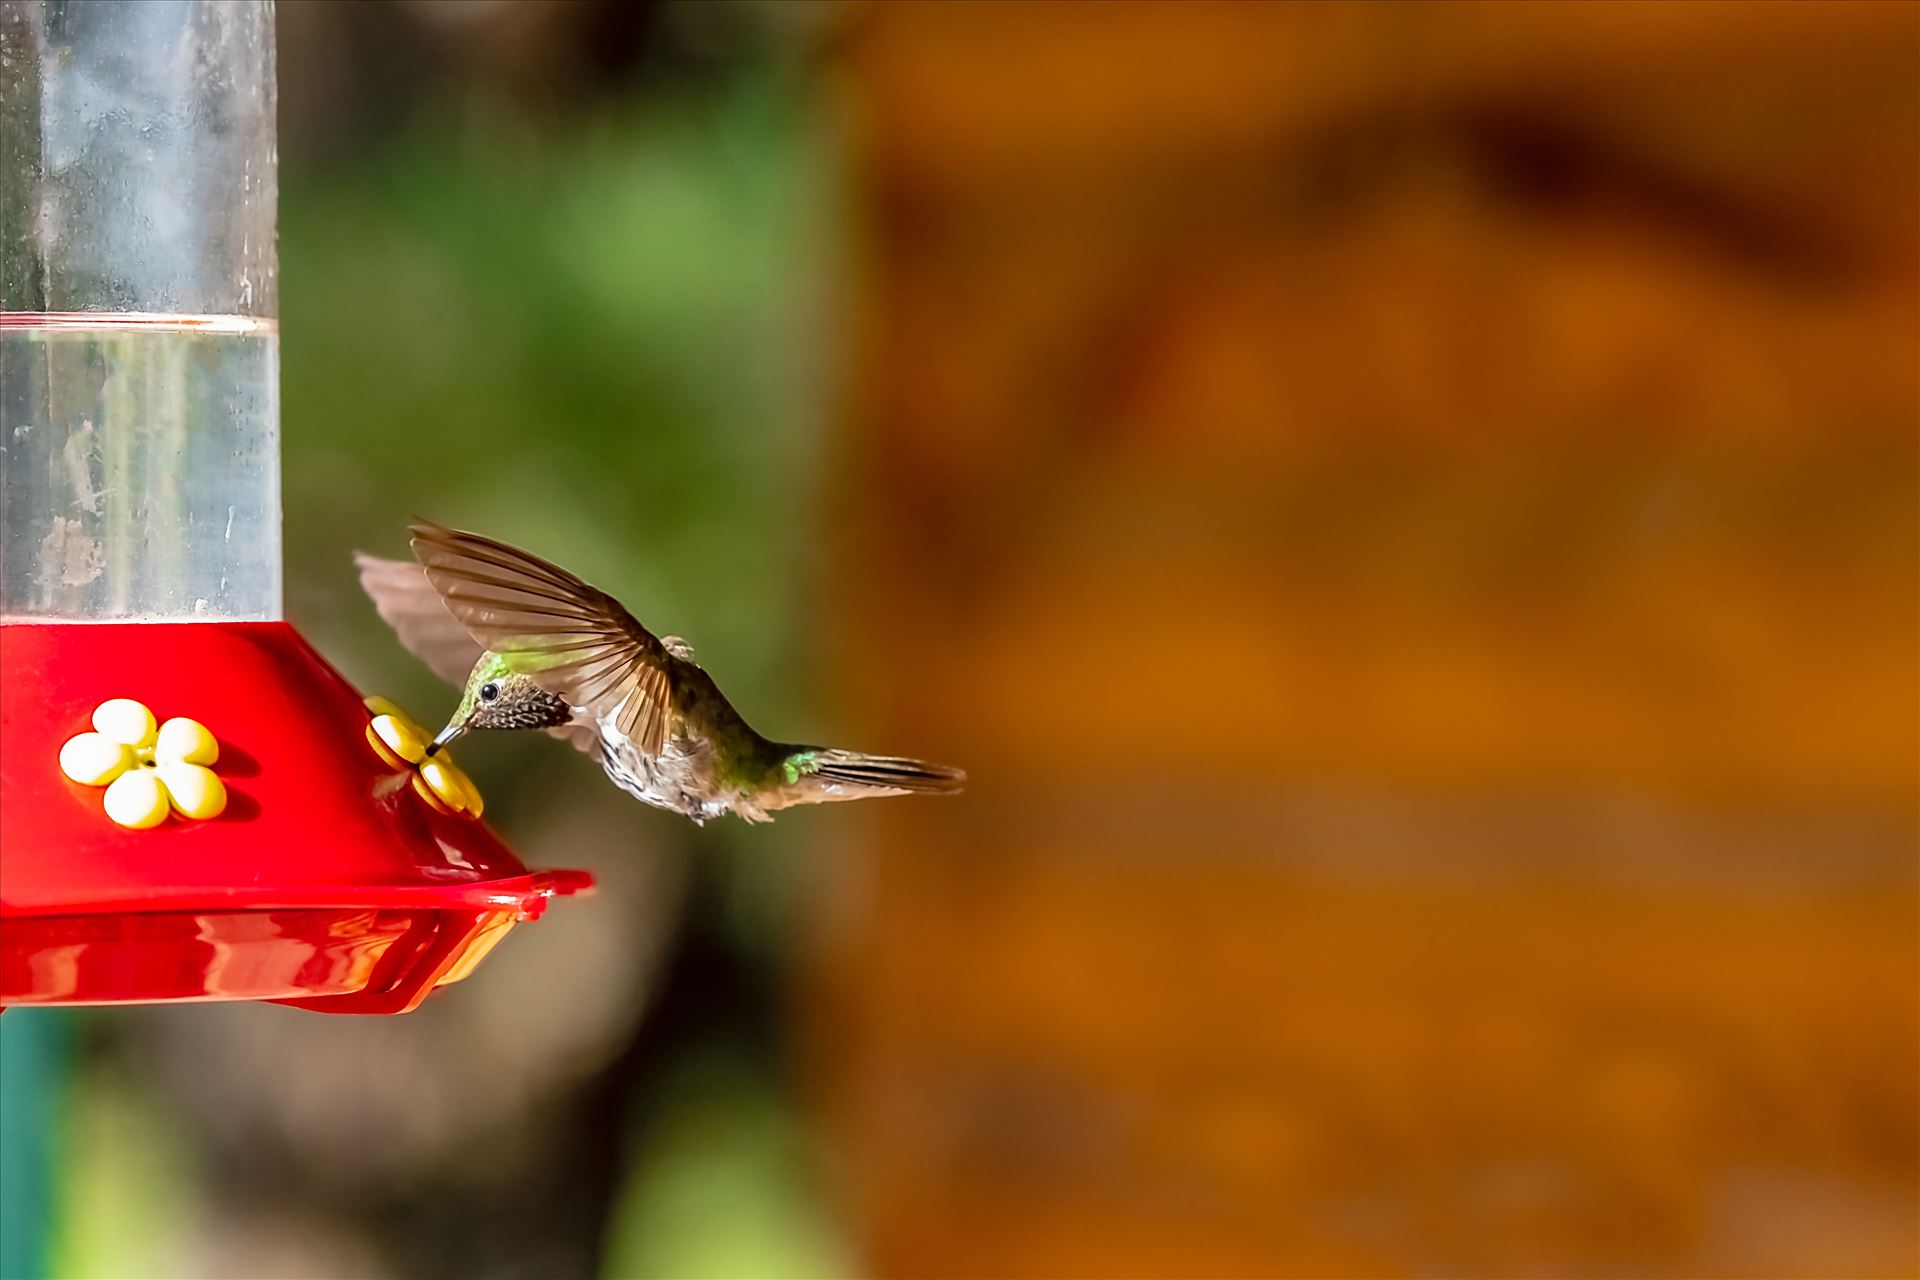 hummingbird drinking sugar water from feeder 8500843 ss as sf.jpg hummingbird drinking sugar water from feeder, Cloudcroft New Mexico by Terry Kelly Photography